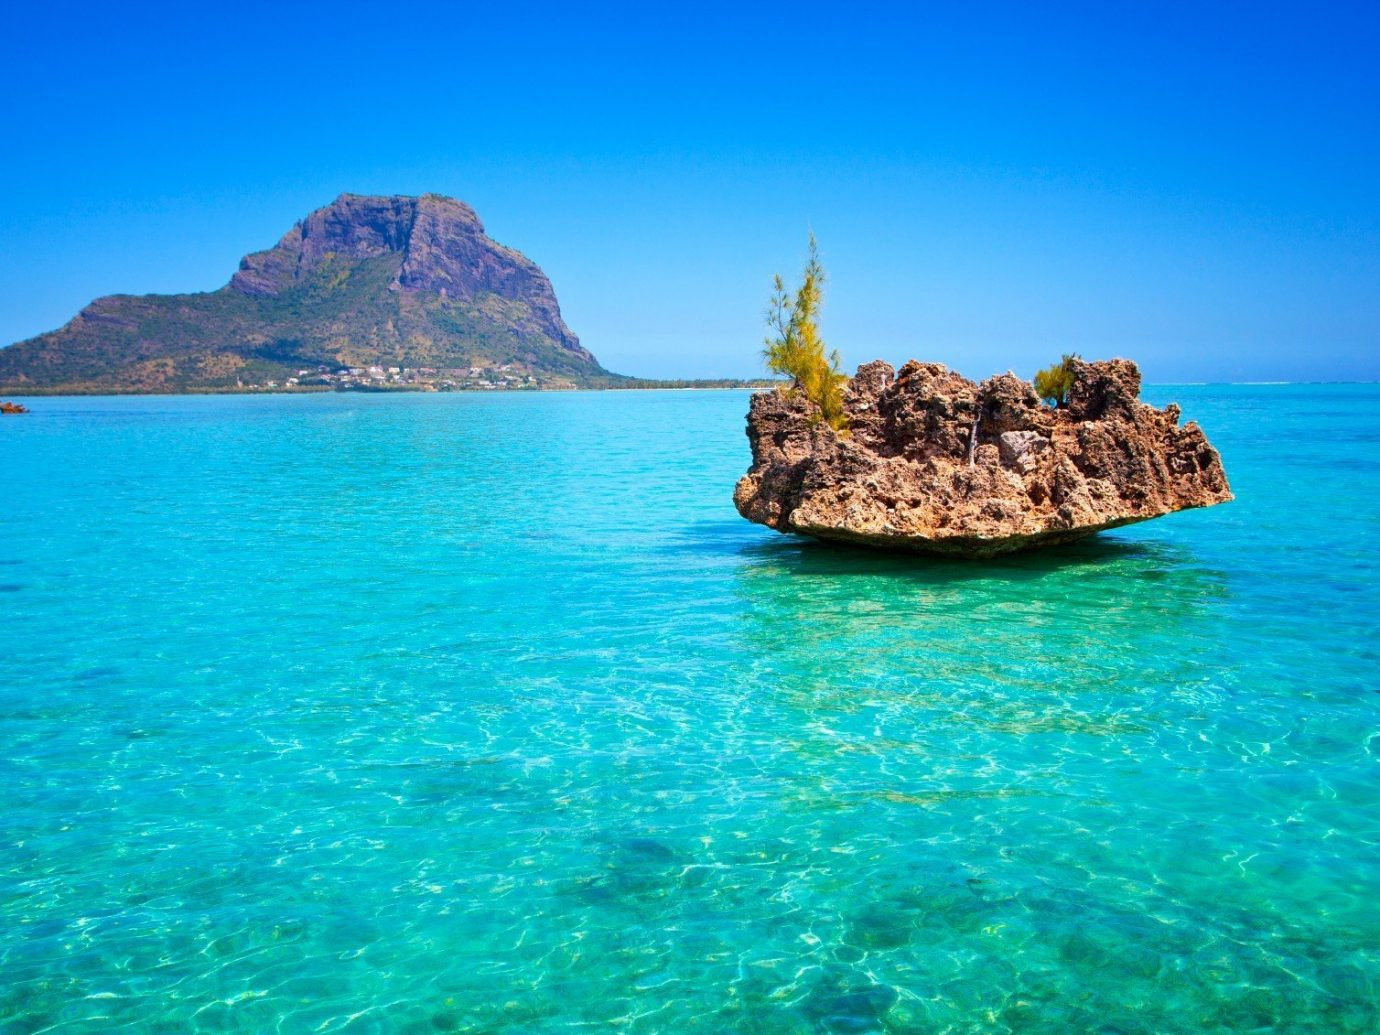 Trip Ideas water sky outdoor mountain Nature Sea landform geographical feature body of water archipelago islet Ocean Coast caribbean bay vacation Island Beach Lagoon cape tropics cove Lake terrain blue surrounded distance day